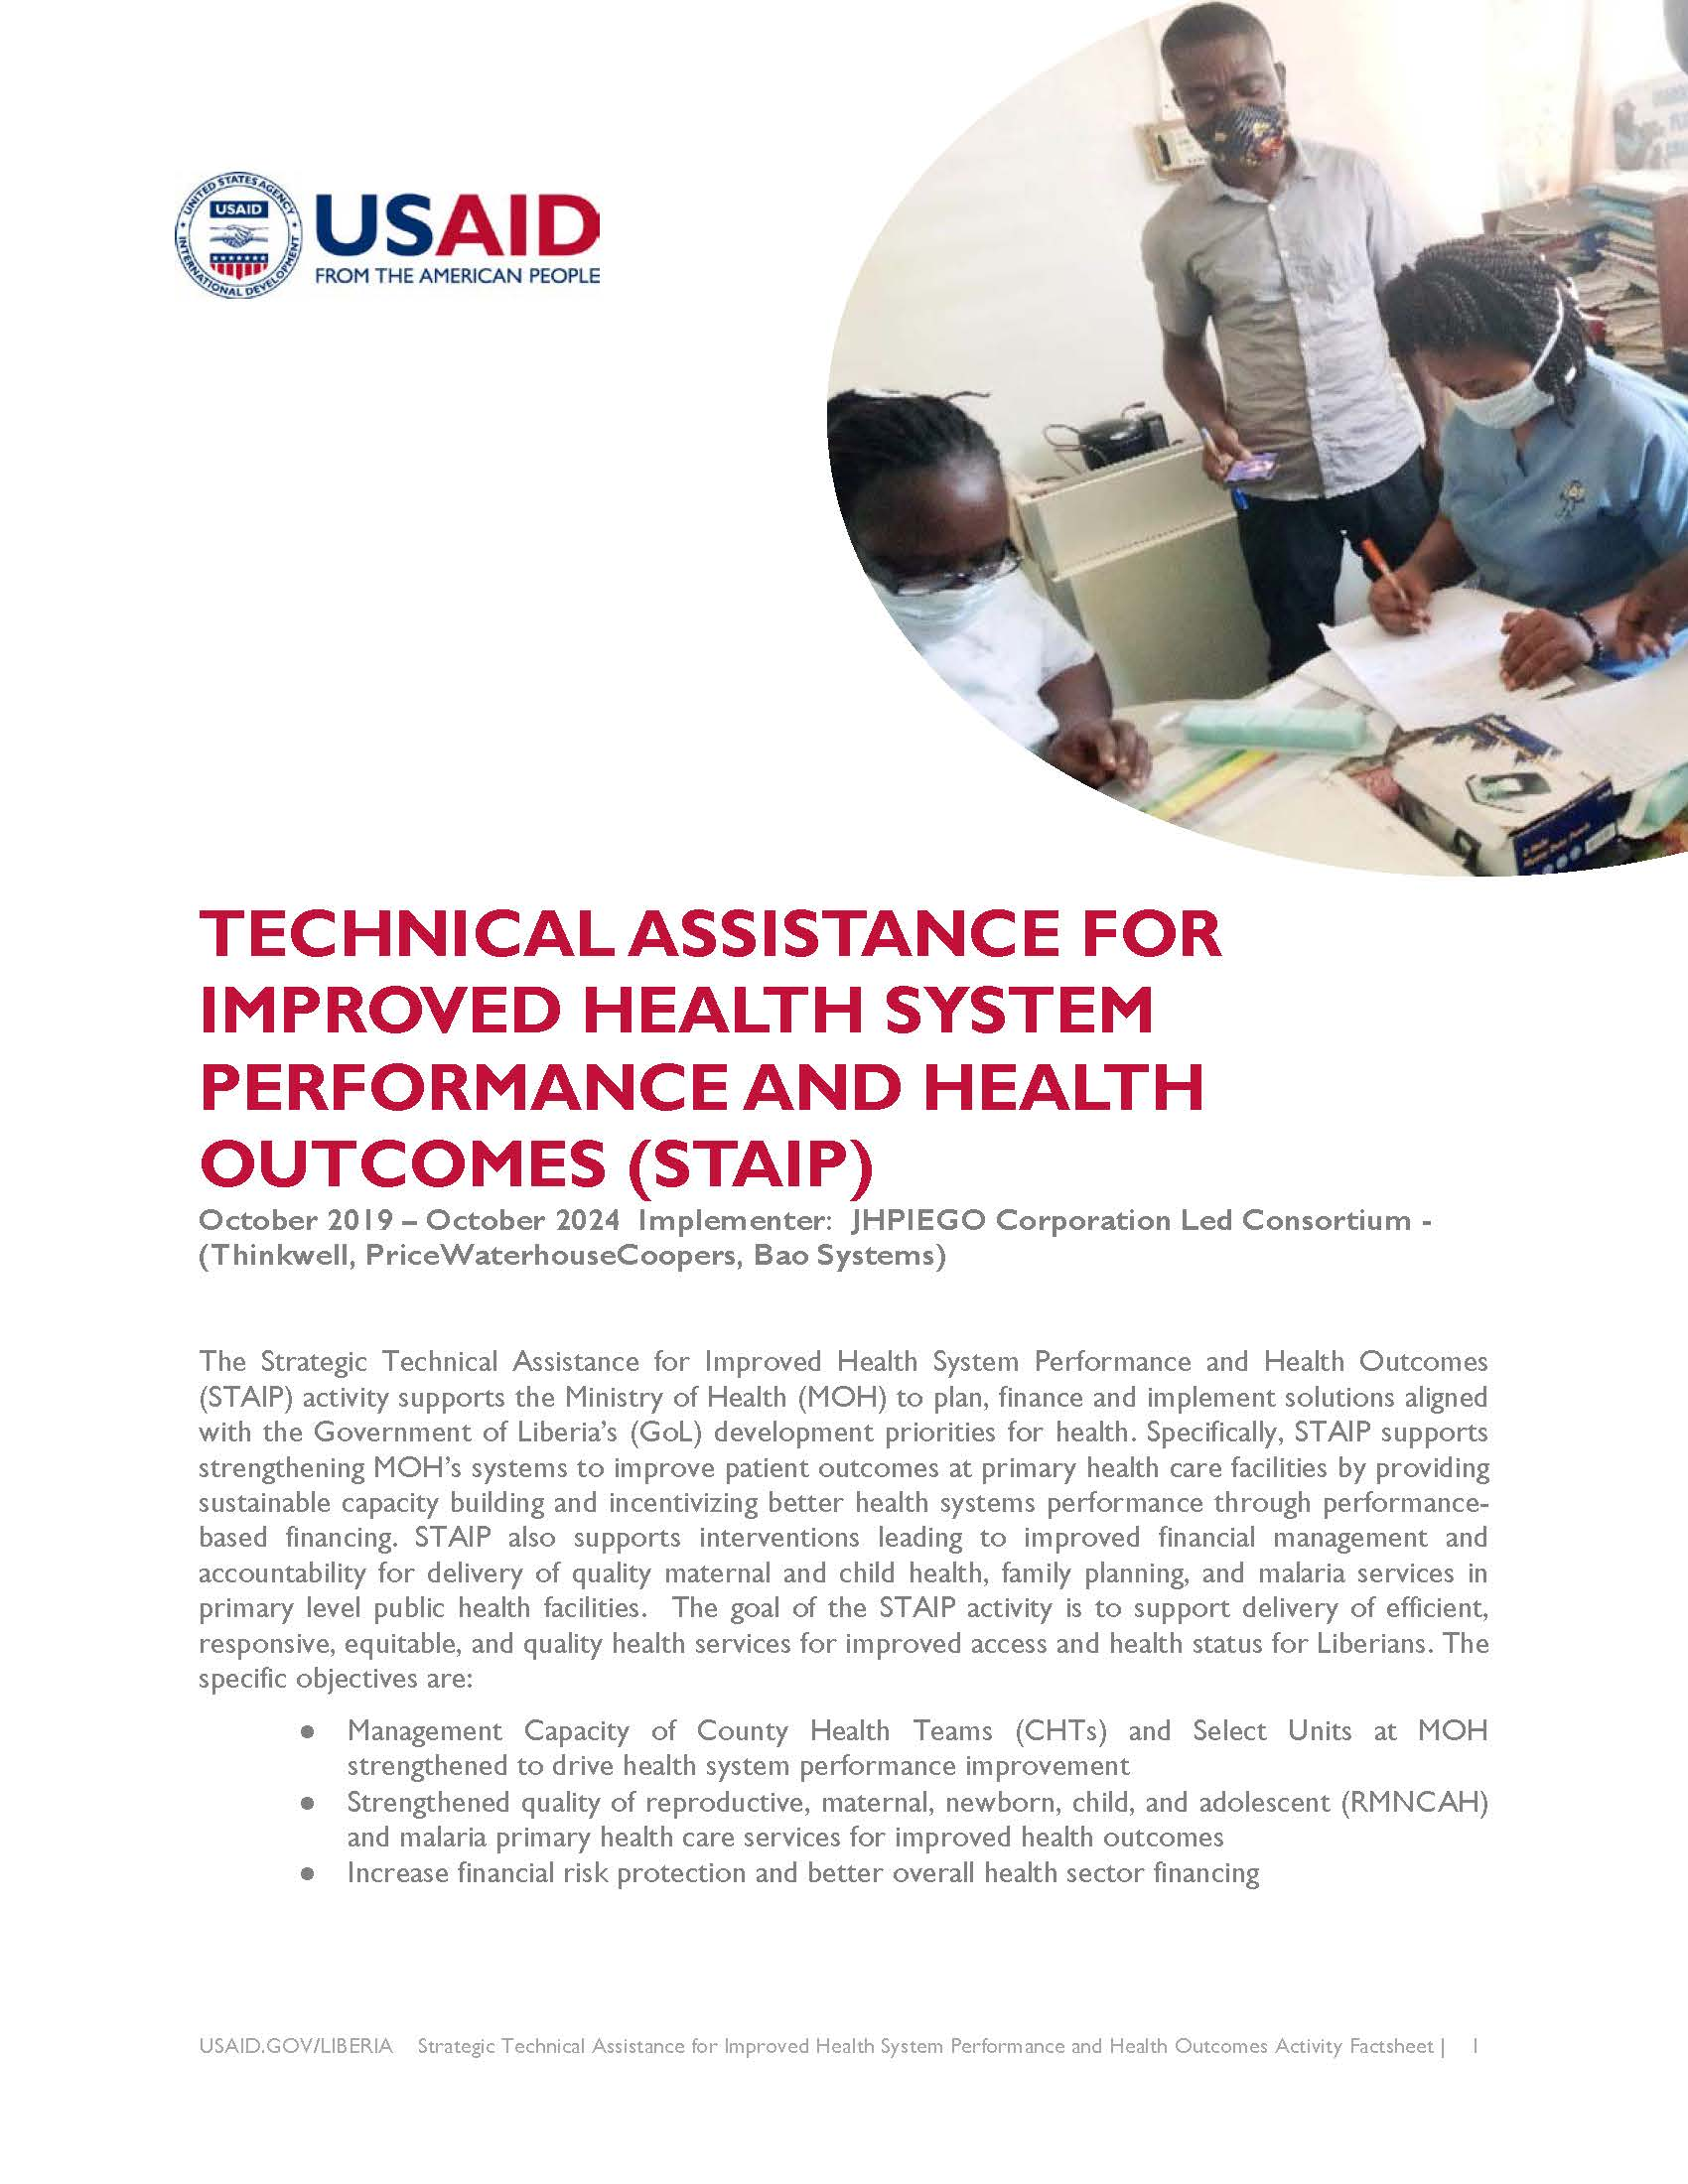 Strategic Technical Assistance for Improved Health System Performance and Health Outcomes Activity